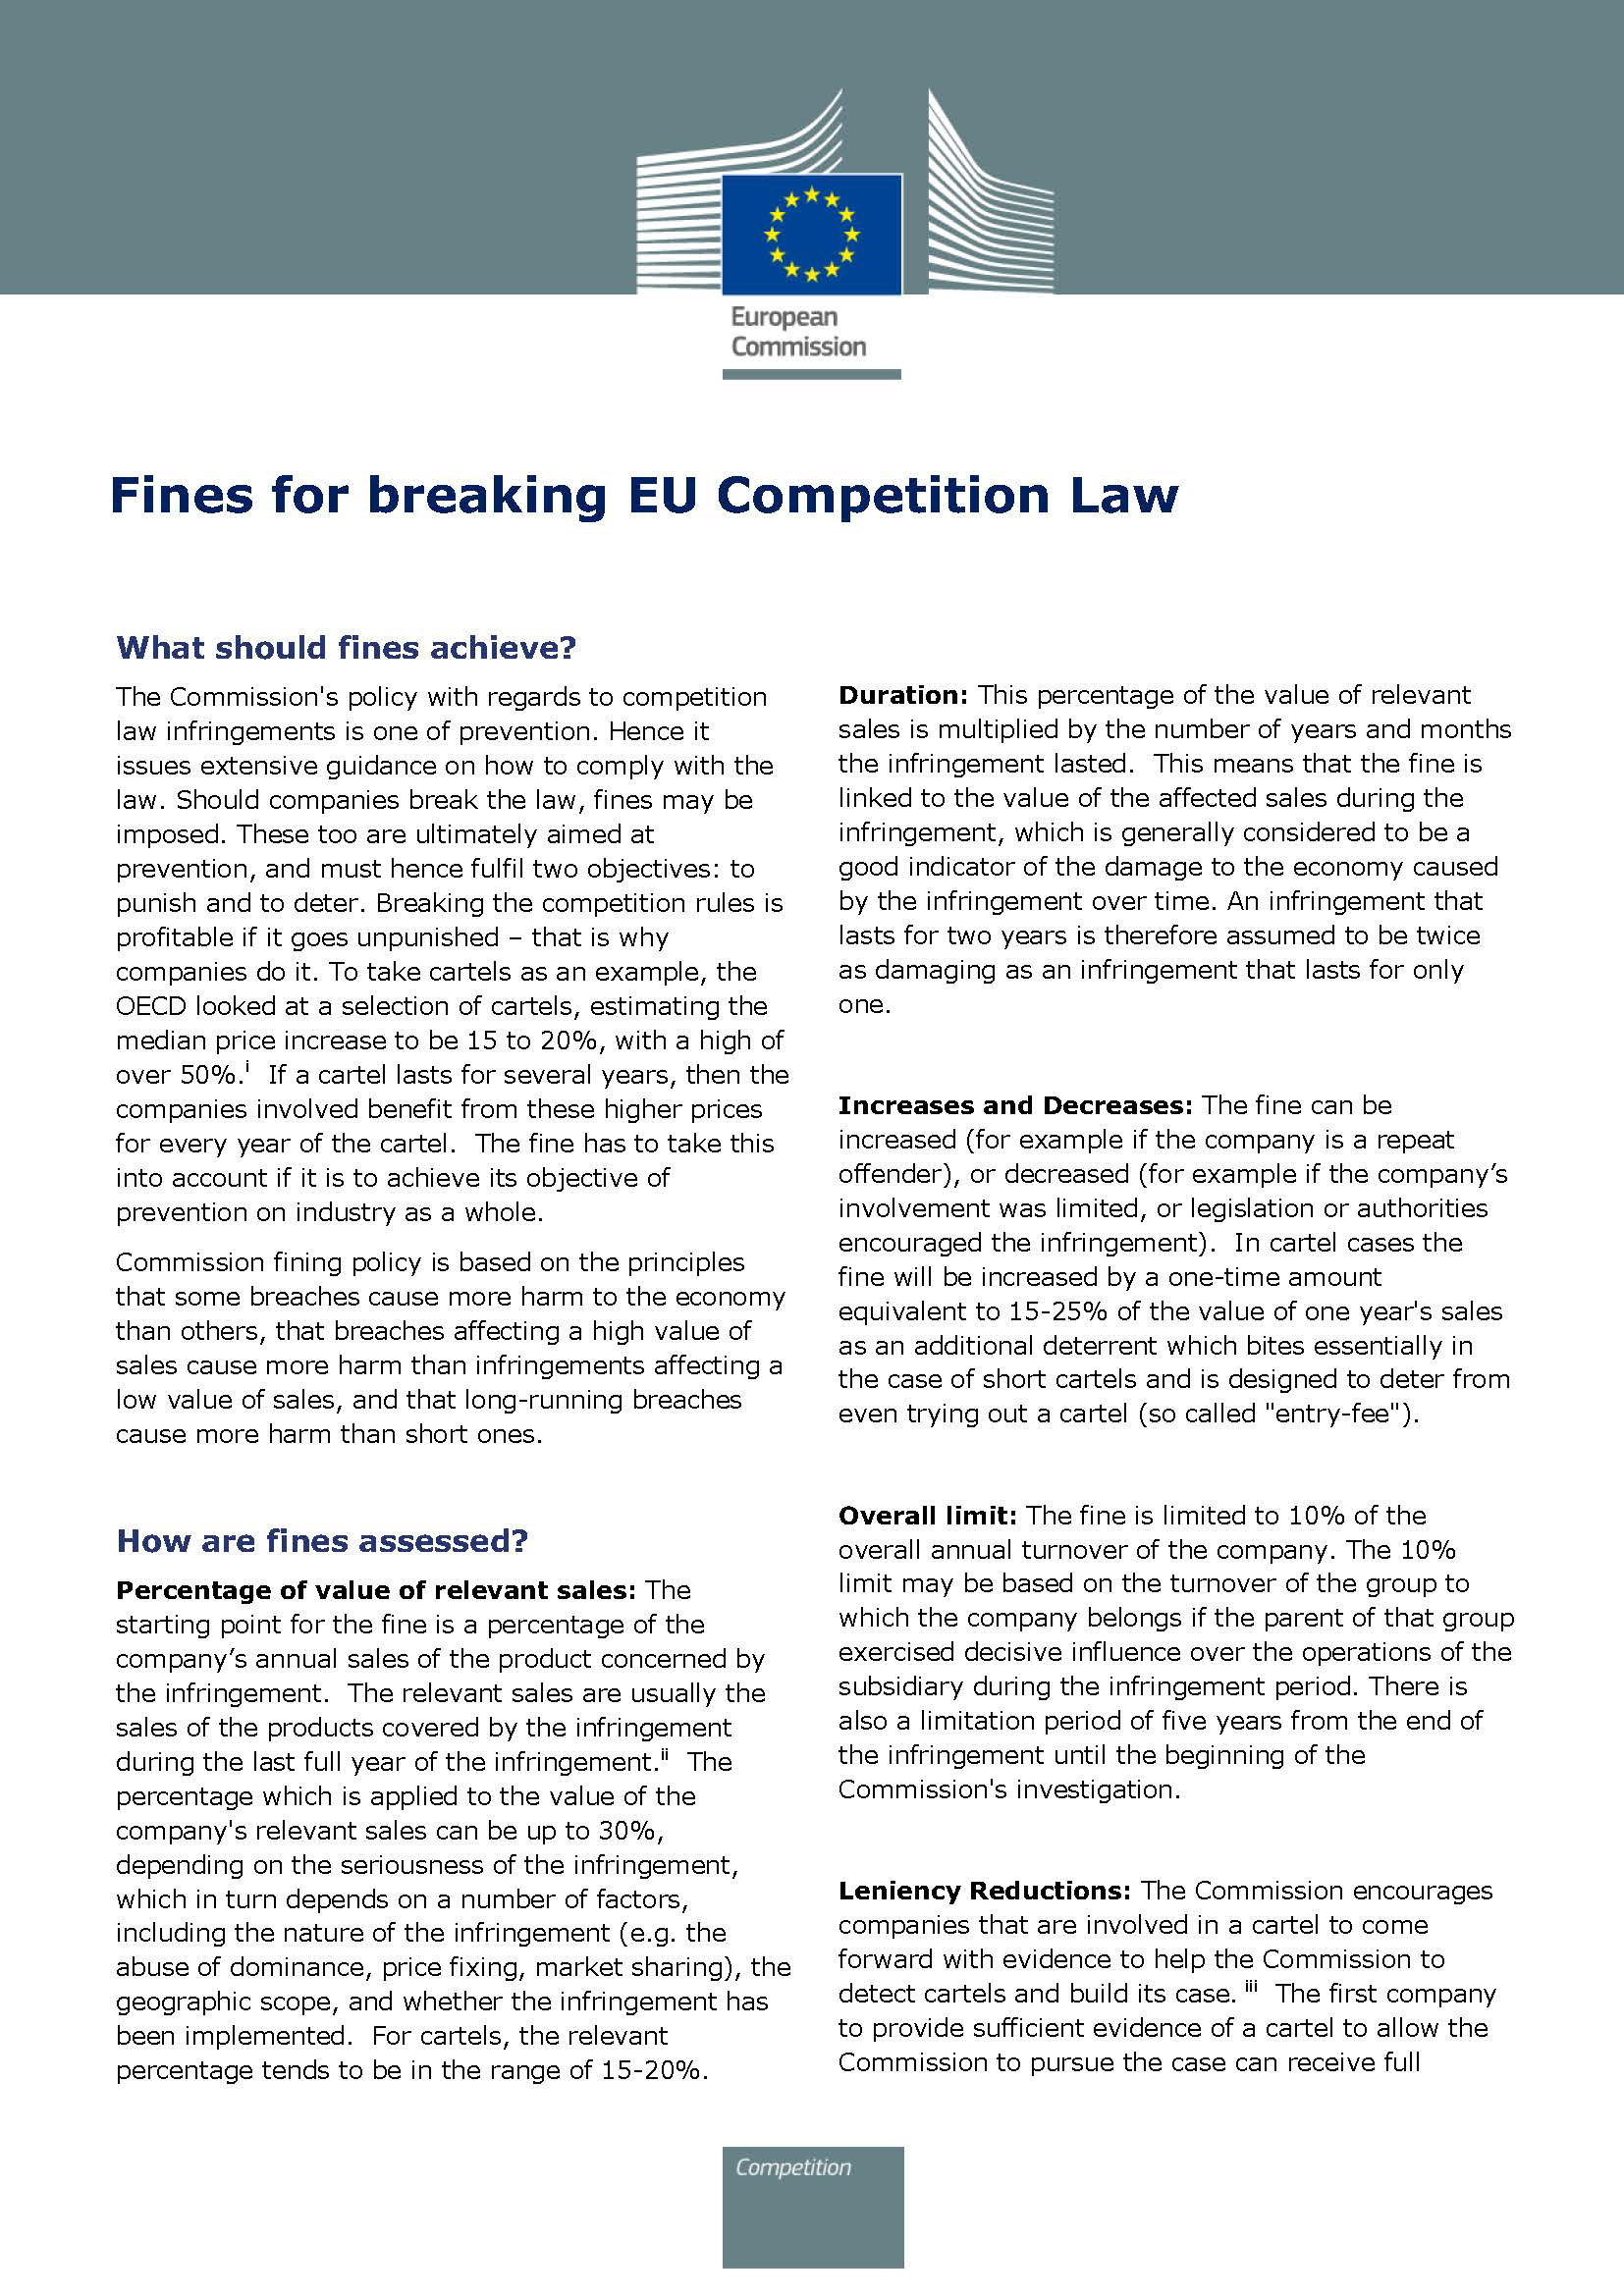 eu competition law essays << custom paper academic writing service eu competition law essays